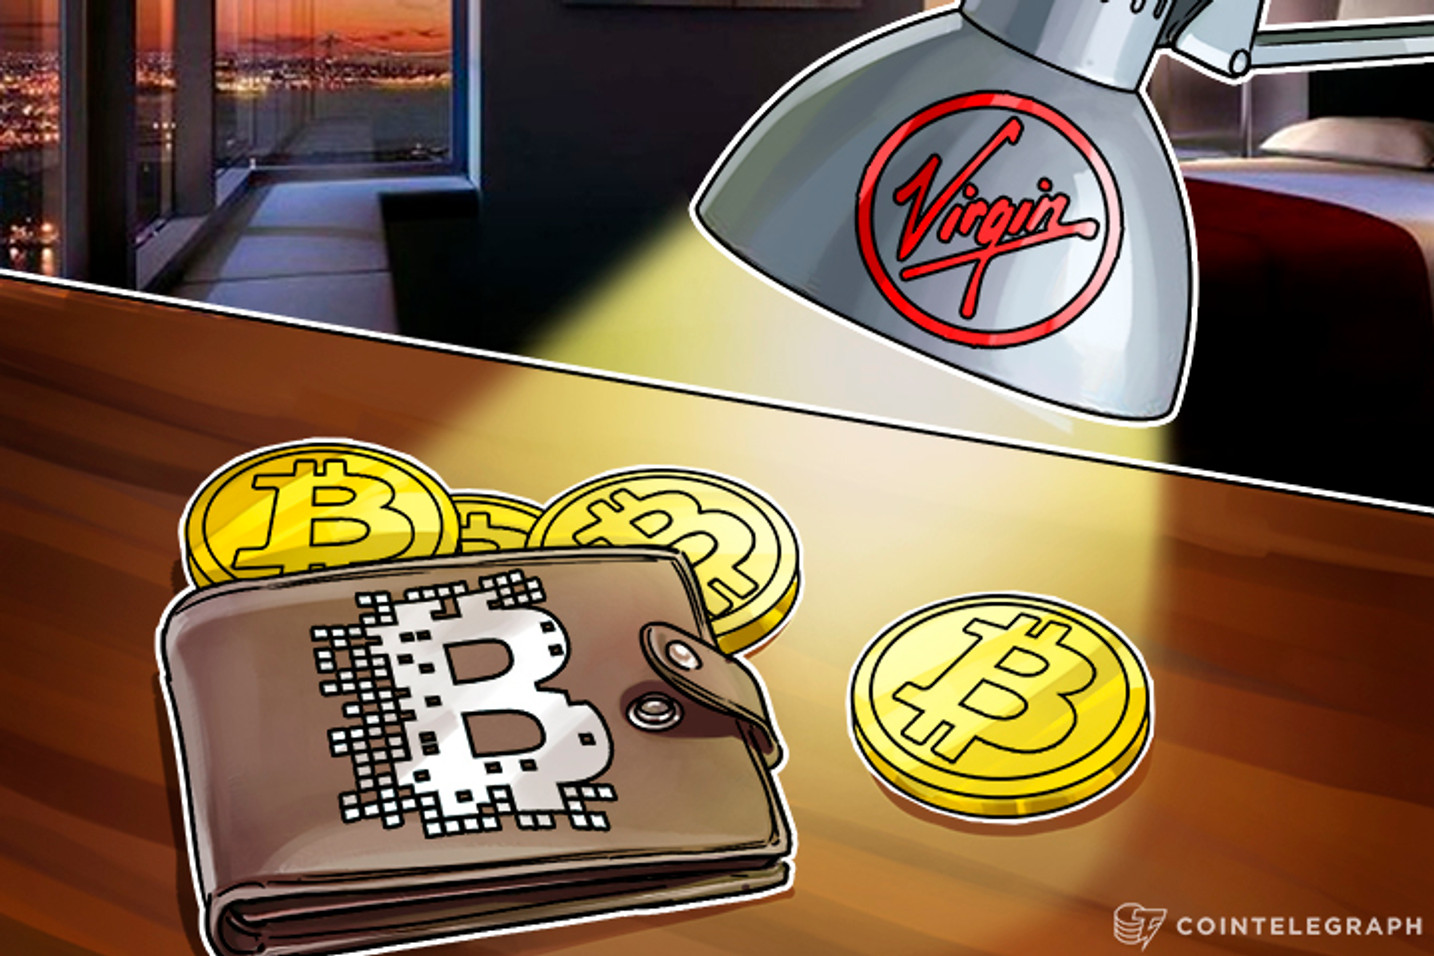 Blockchain Wallet Joins Top 10 UK Disruptive Companies For Innovative Bitcoin Service